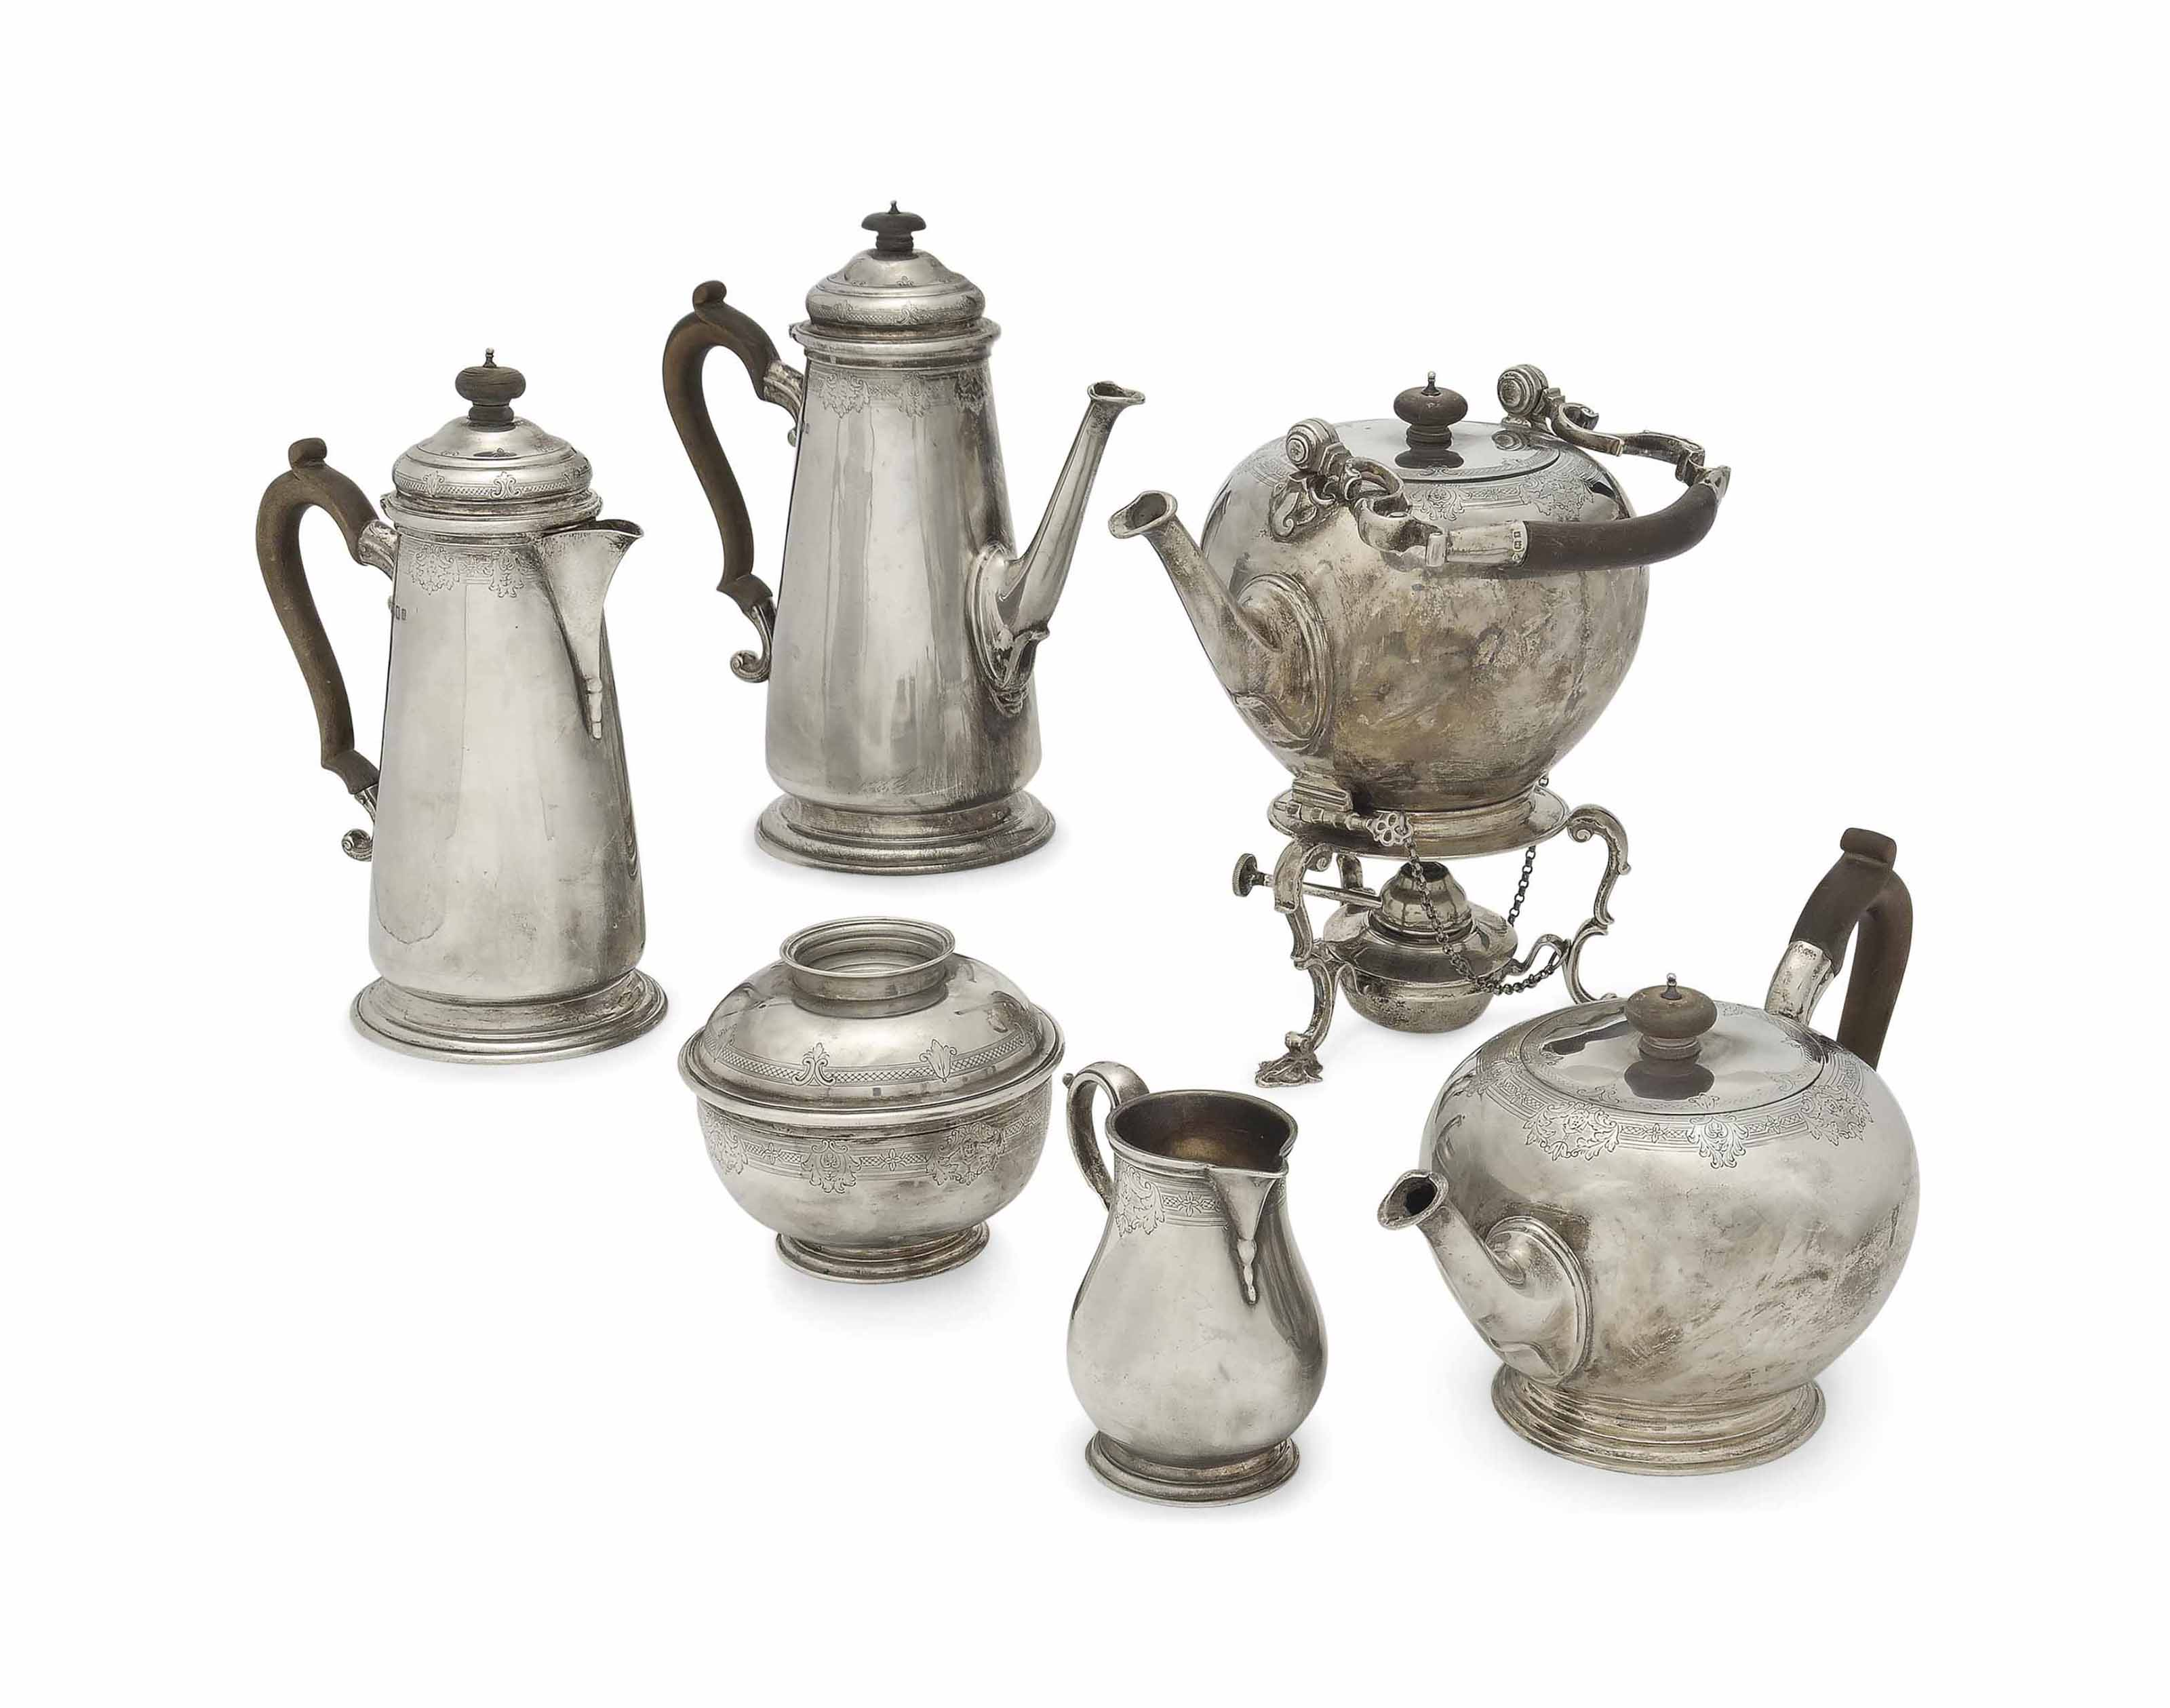 A SIX-PIECE SILVER TEA AND COFFEE SET IN THE GEORGE II STYLE